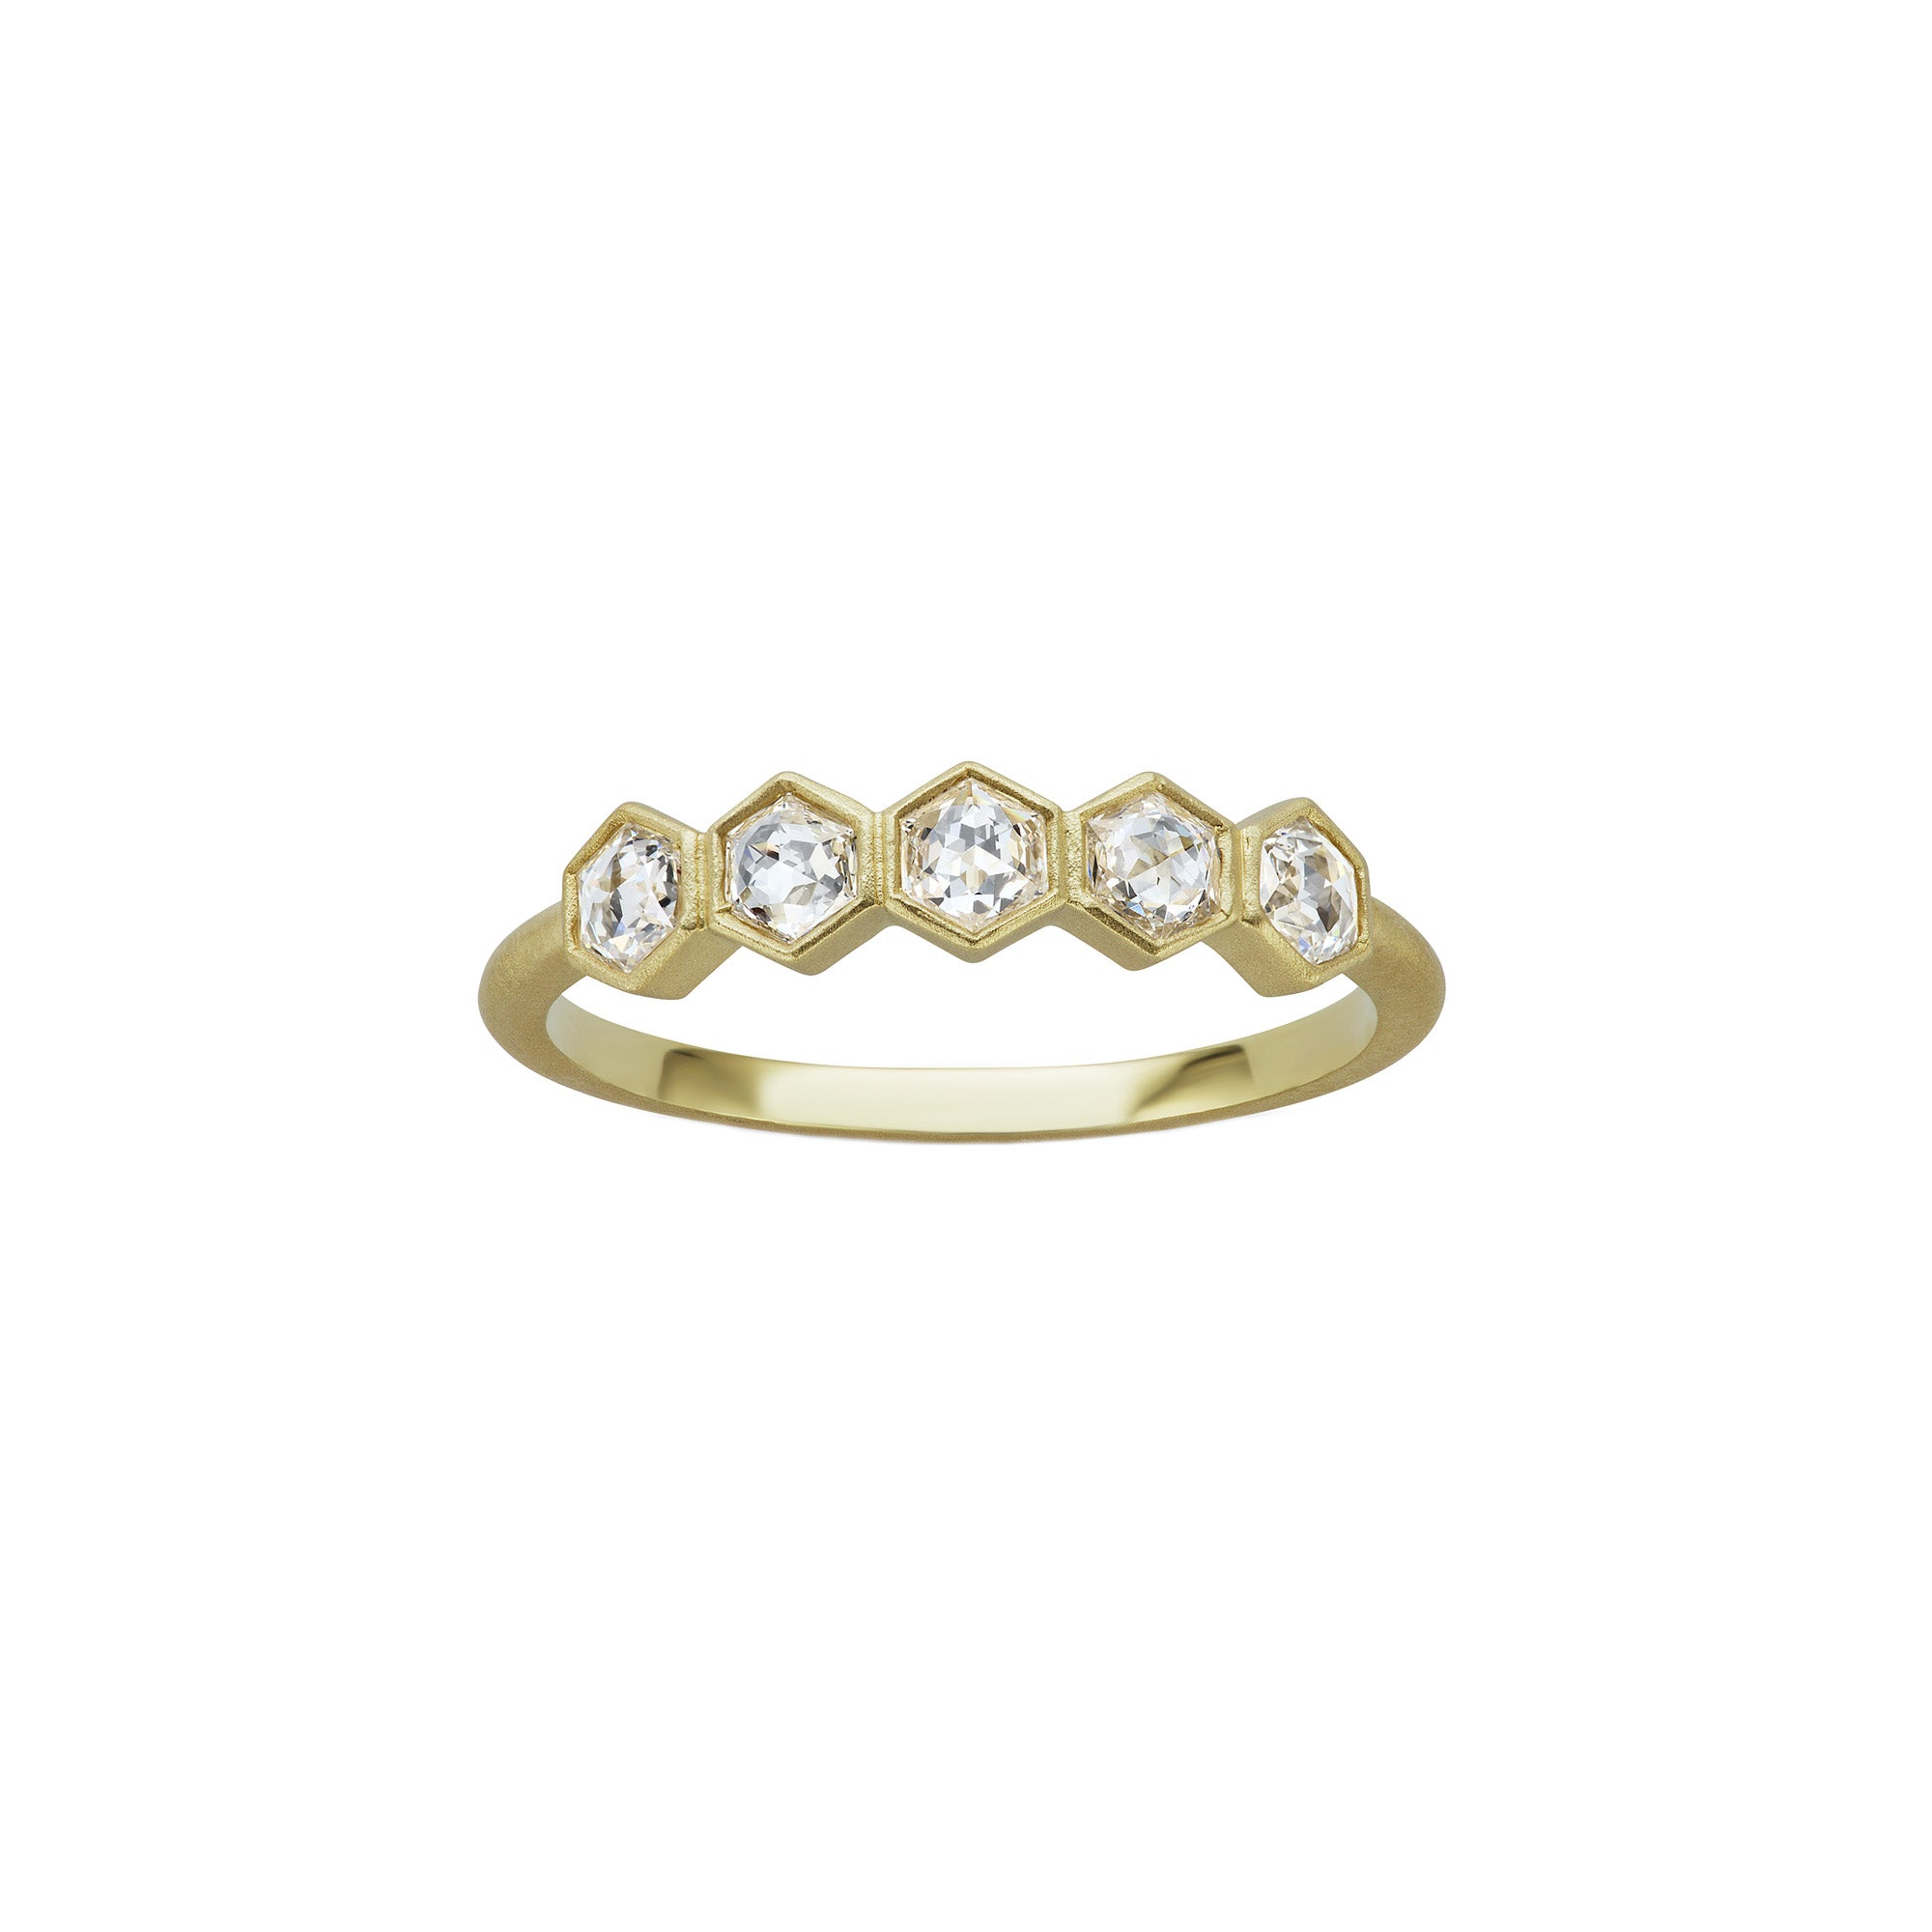 Michelle Fantaci Hexagonal Diamond Band - Rings - Broken English Jewelry